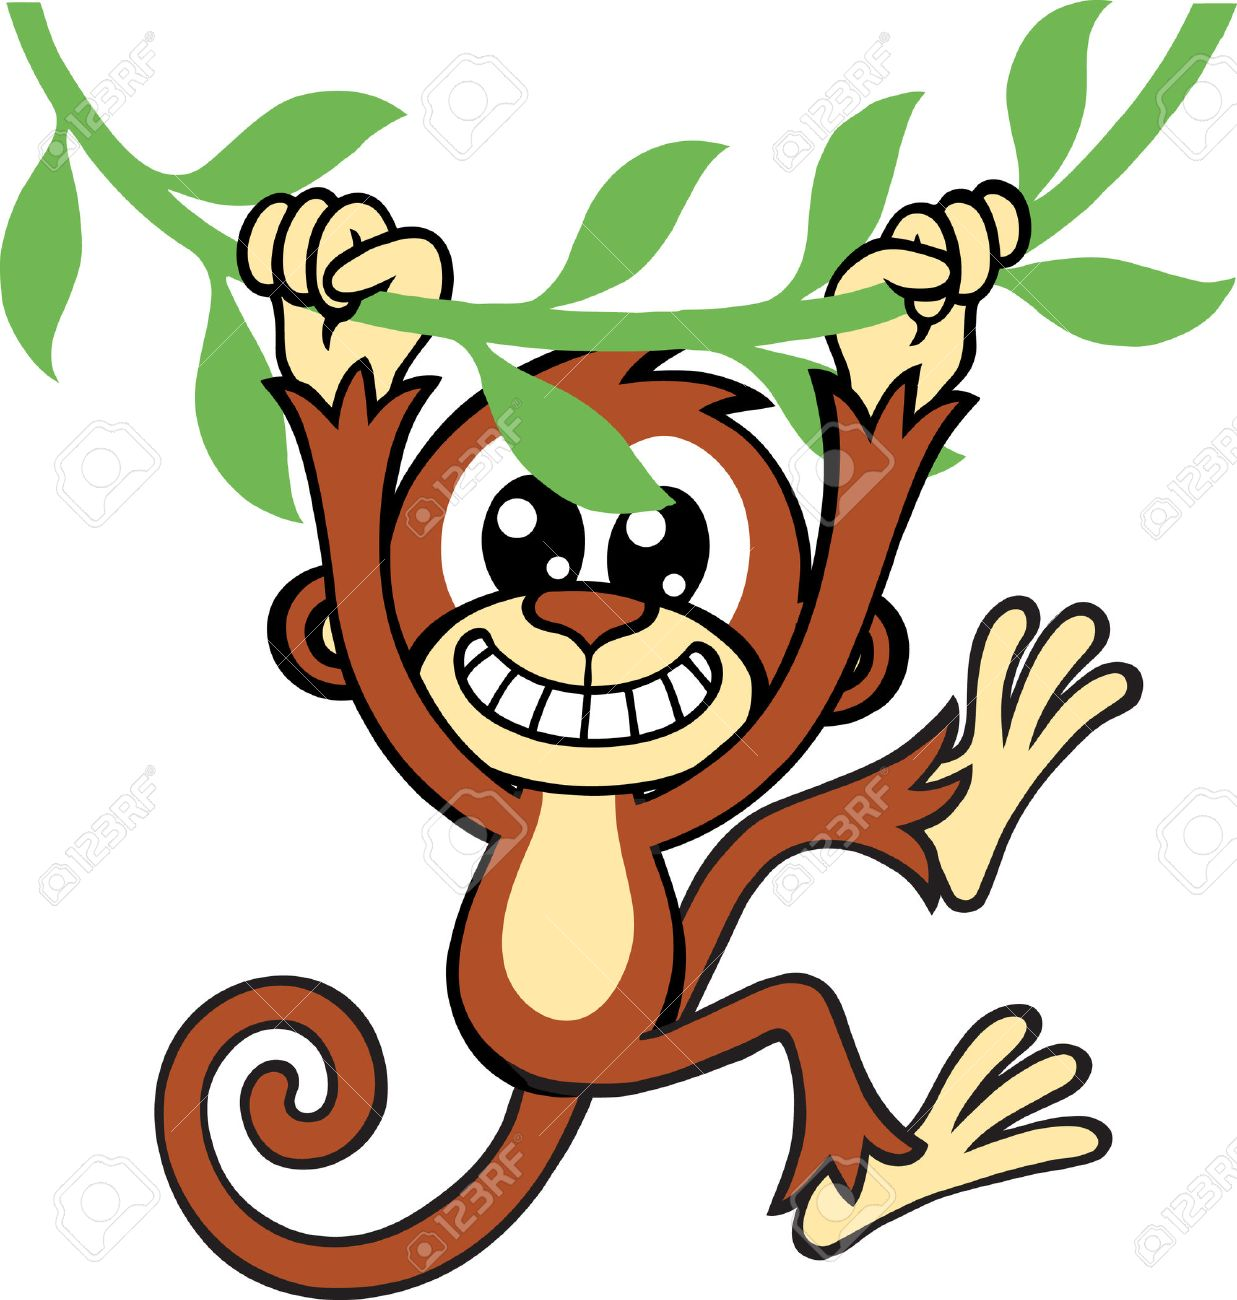 Swinging monkey clipart 6 » Clipart Station.